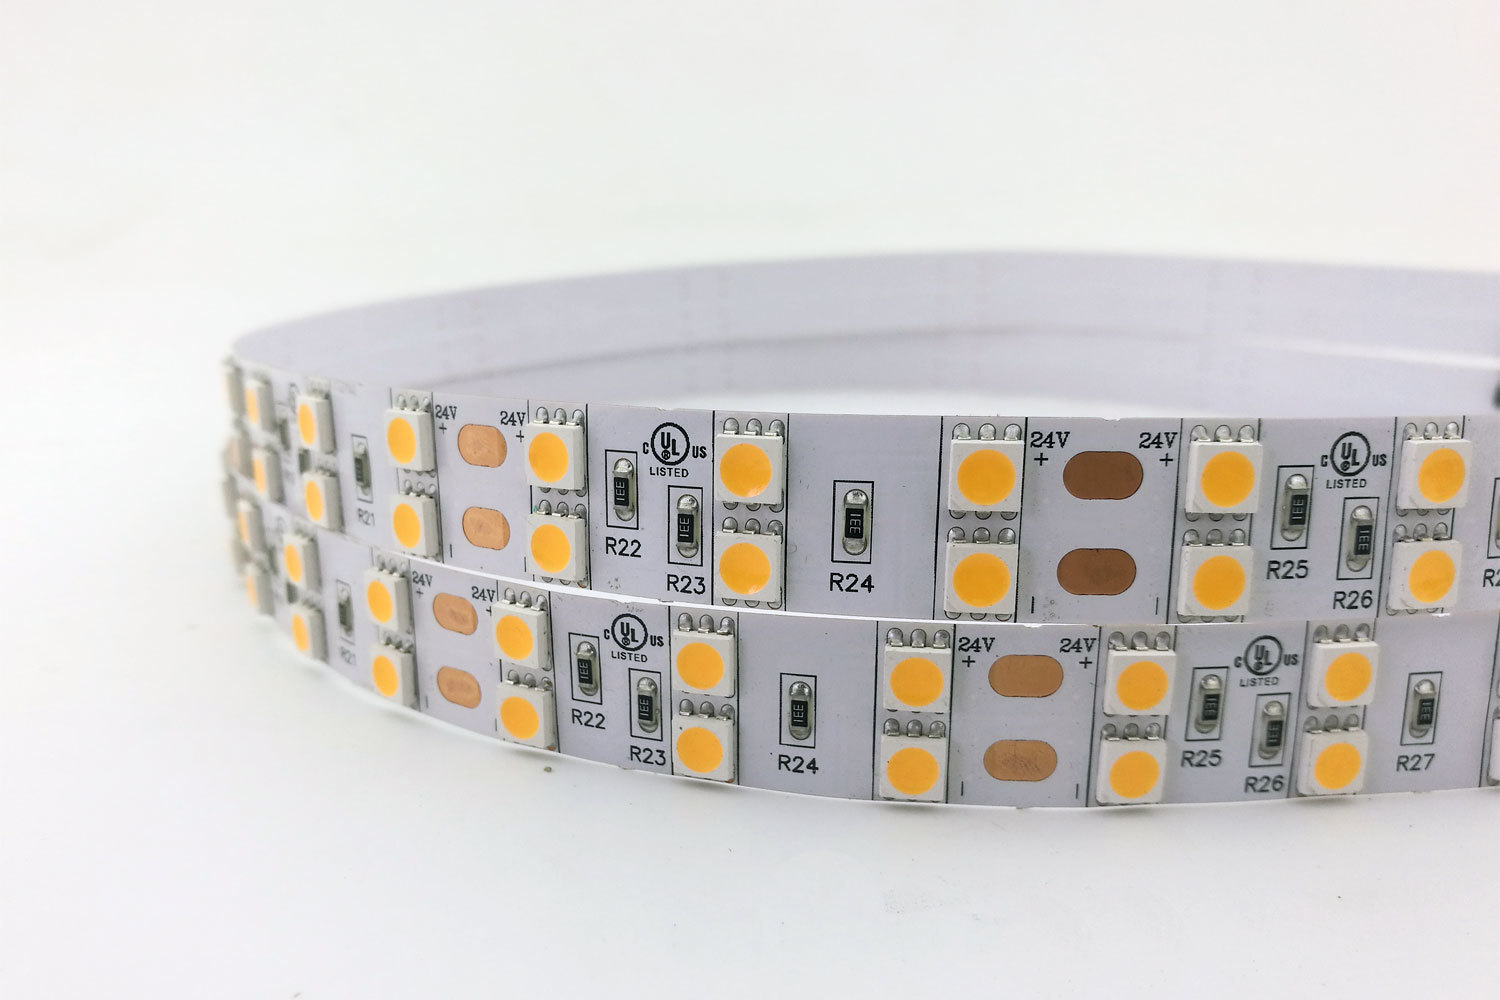 DeRun dotless brightest led strip long-term-use for building